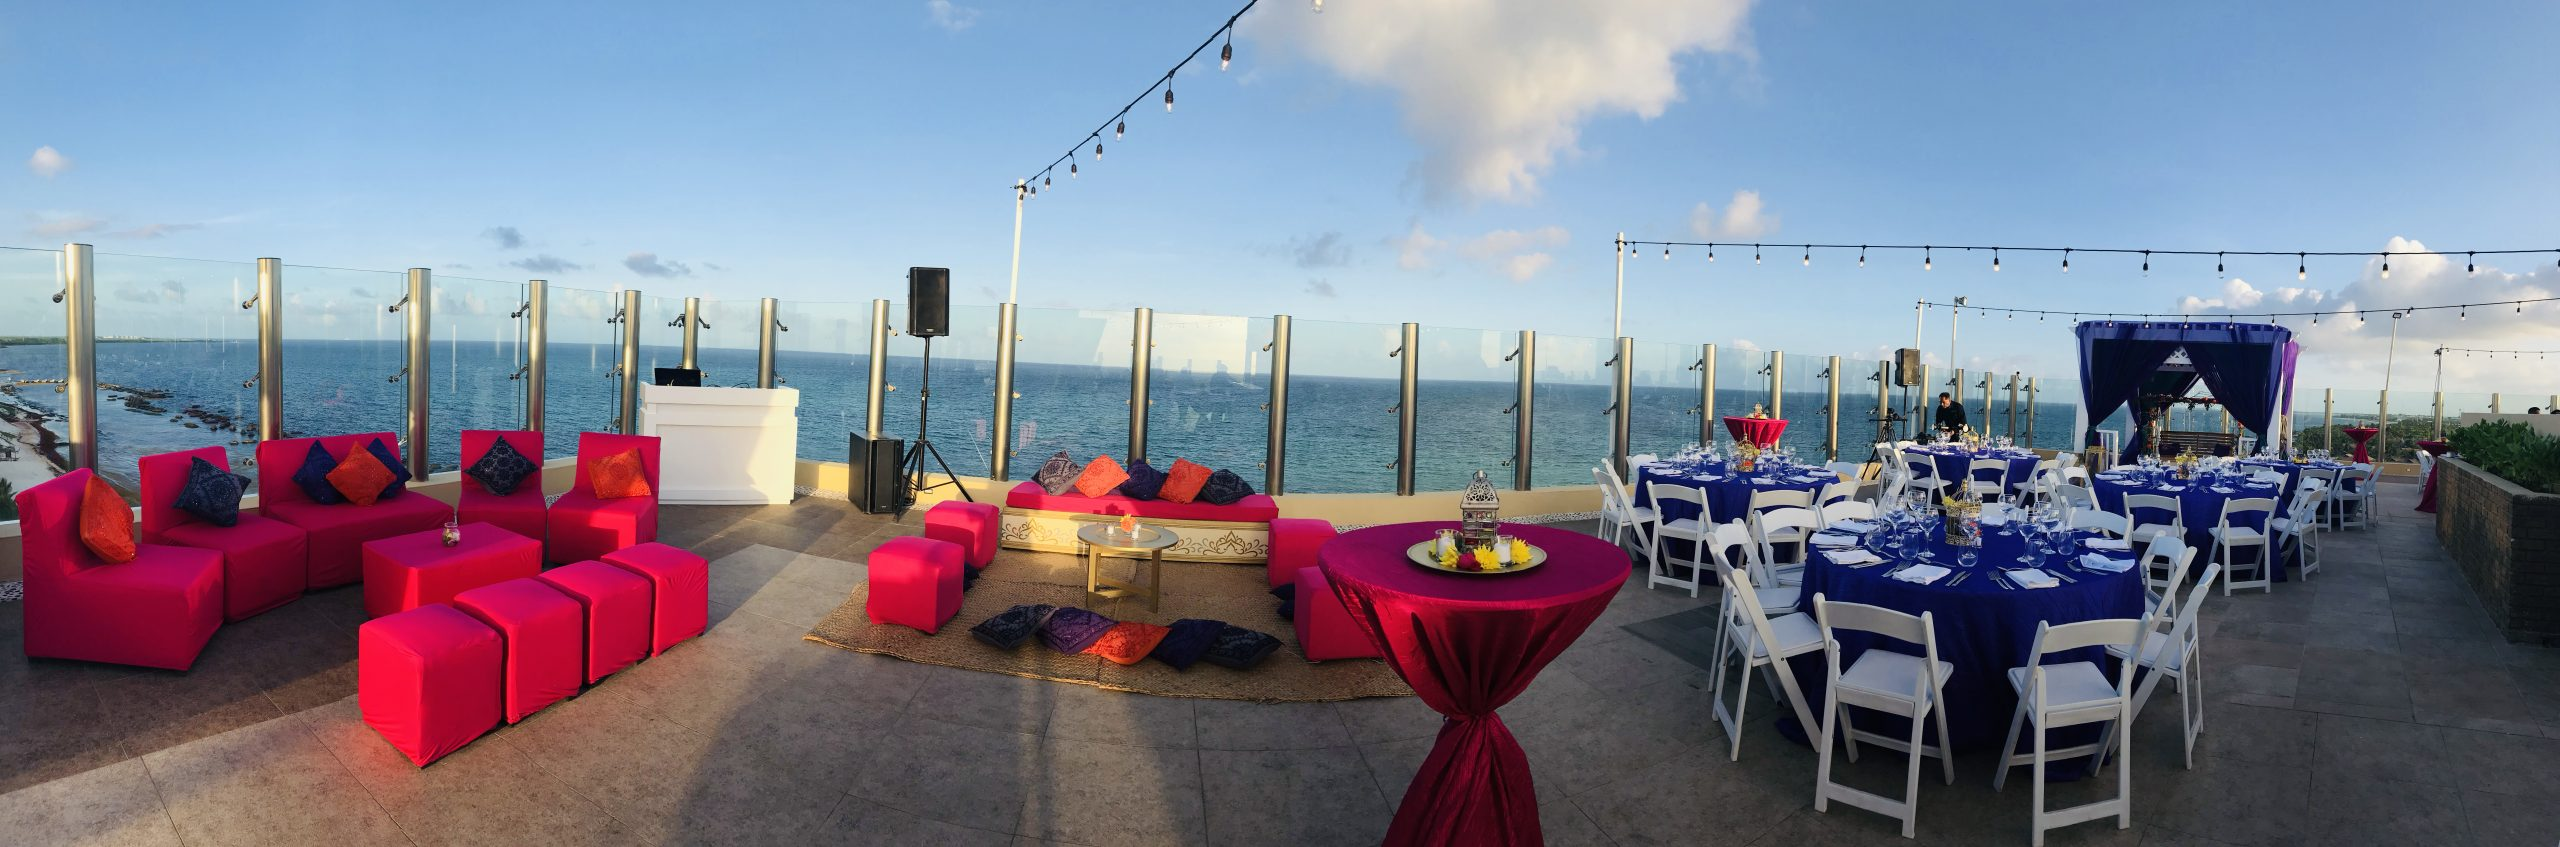 Decor cost for a mehndi event in generation riviera maya mexico by latin asia one stop solution